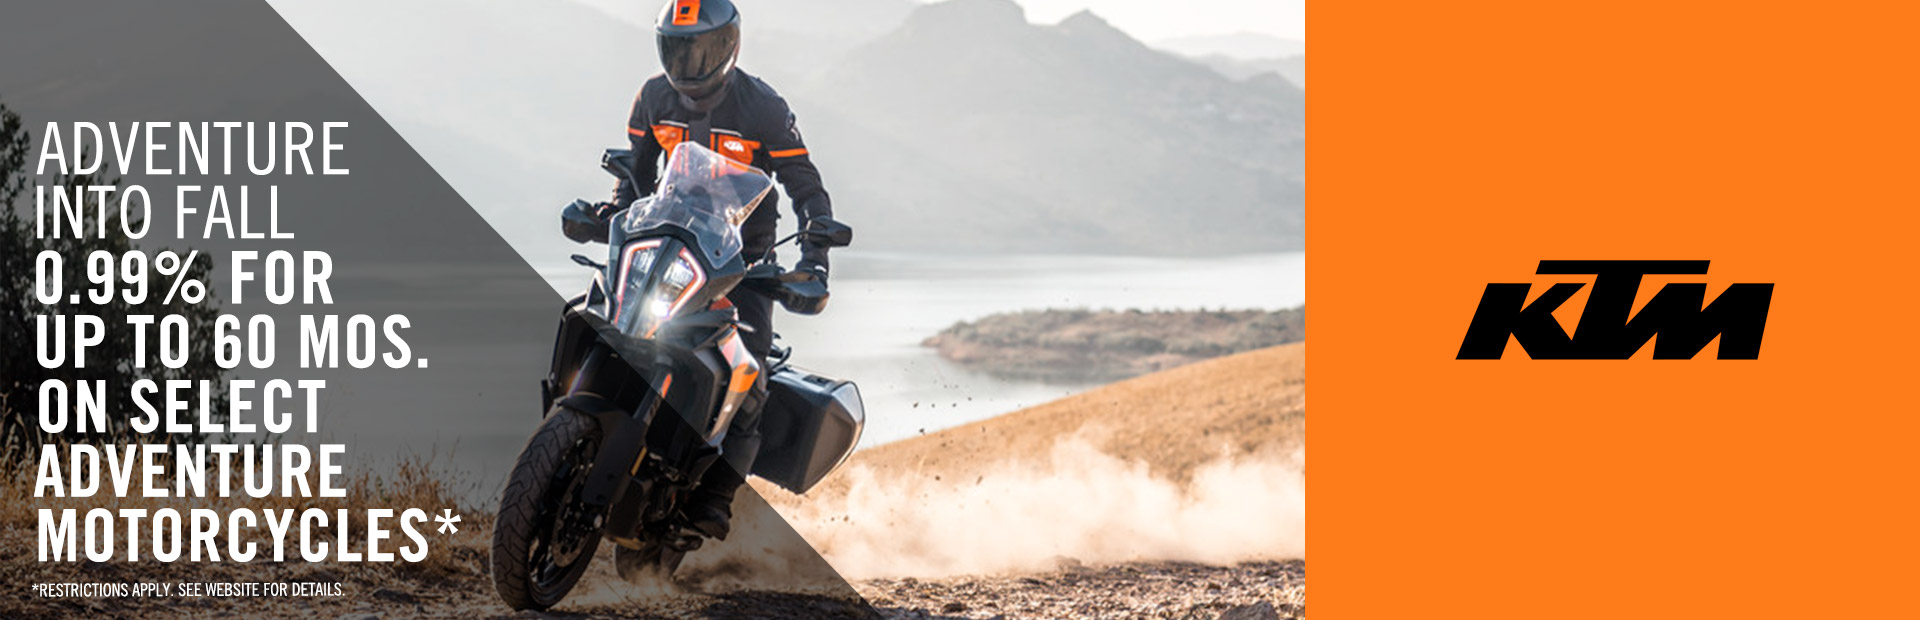 KTM: Fall is For Adventure